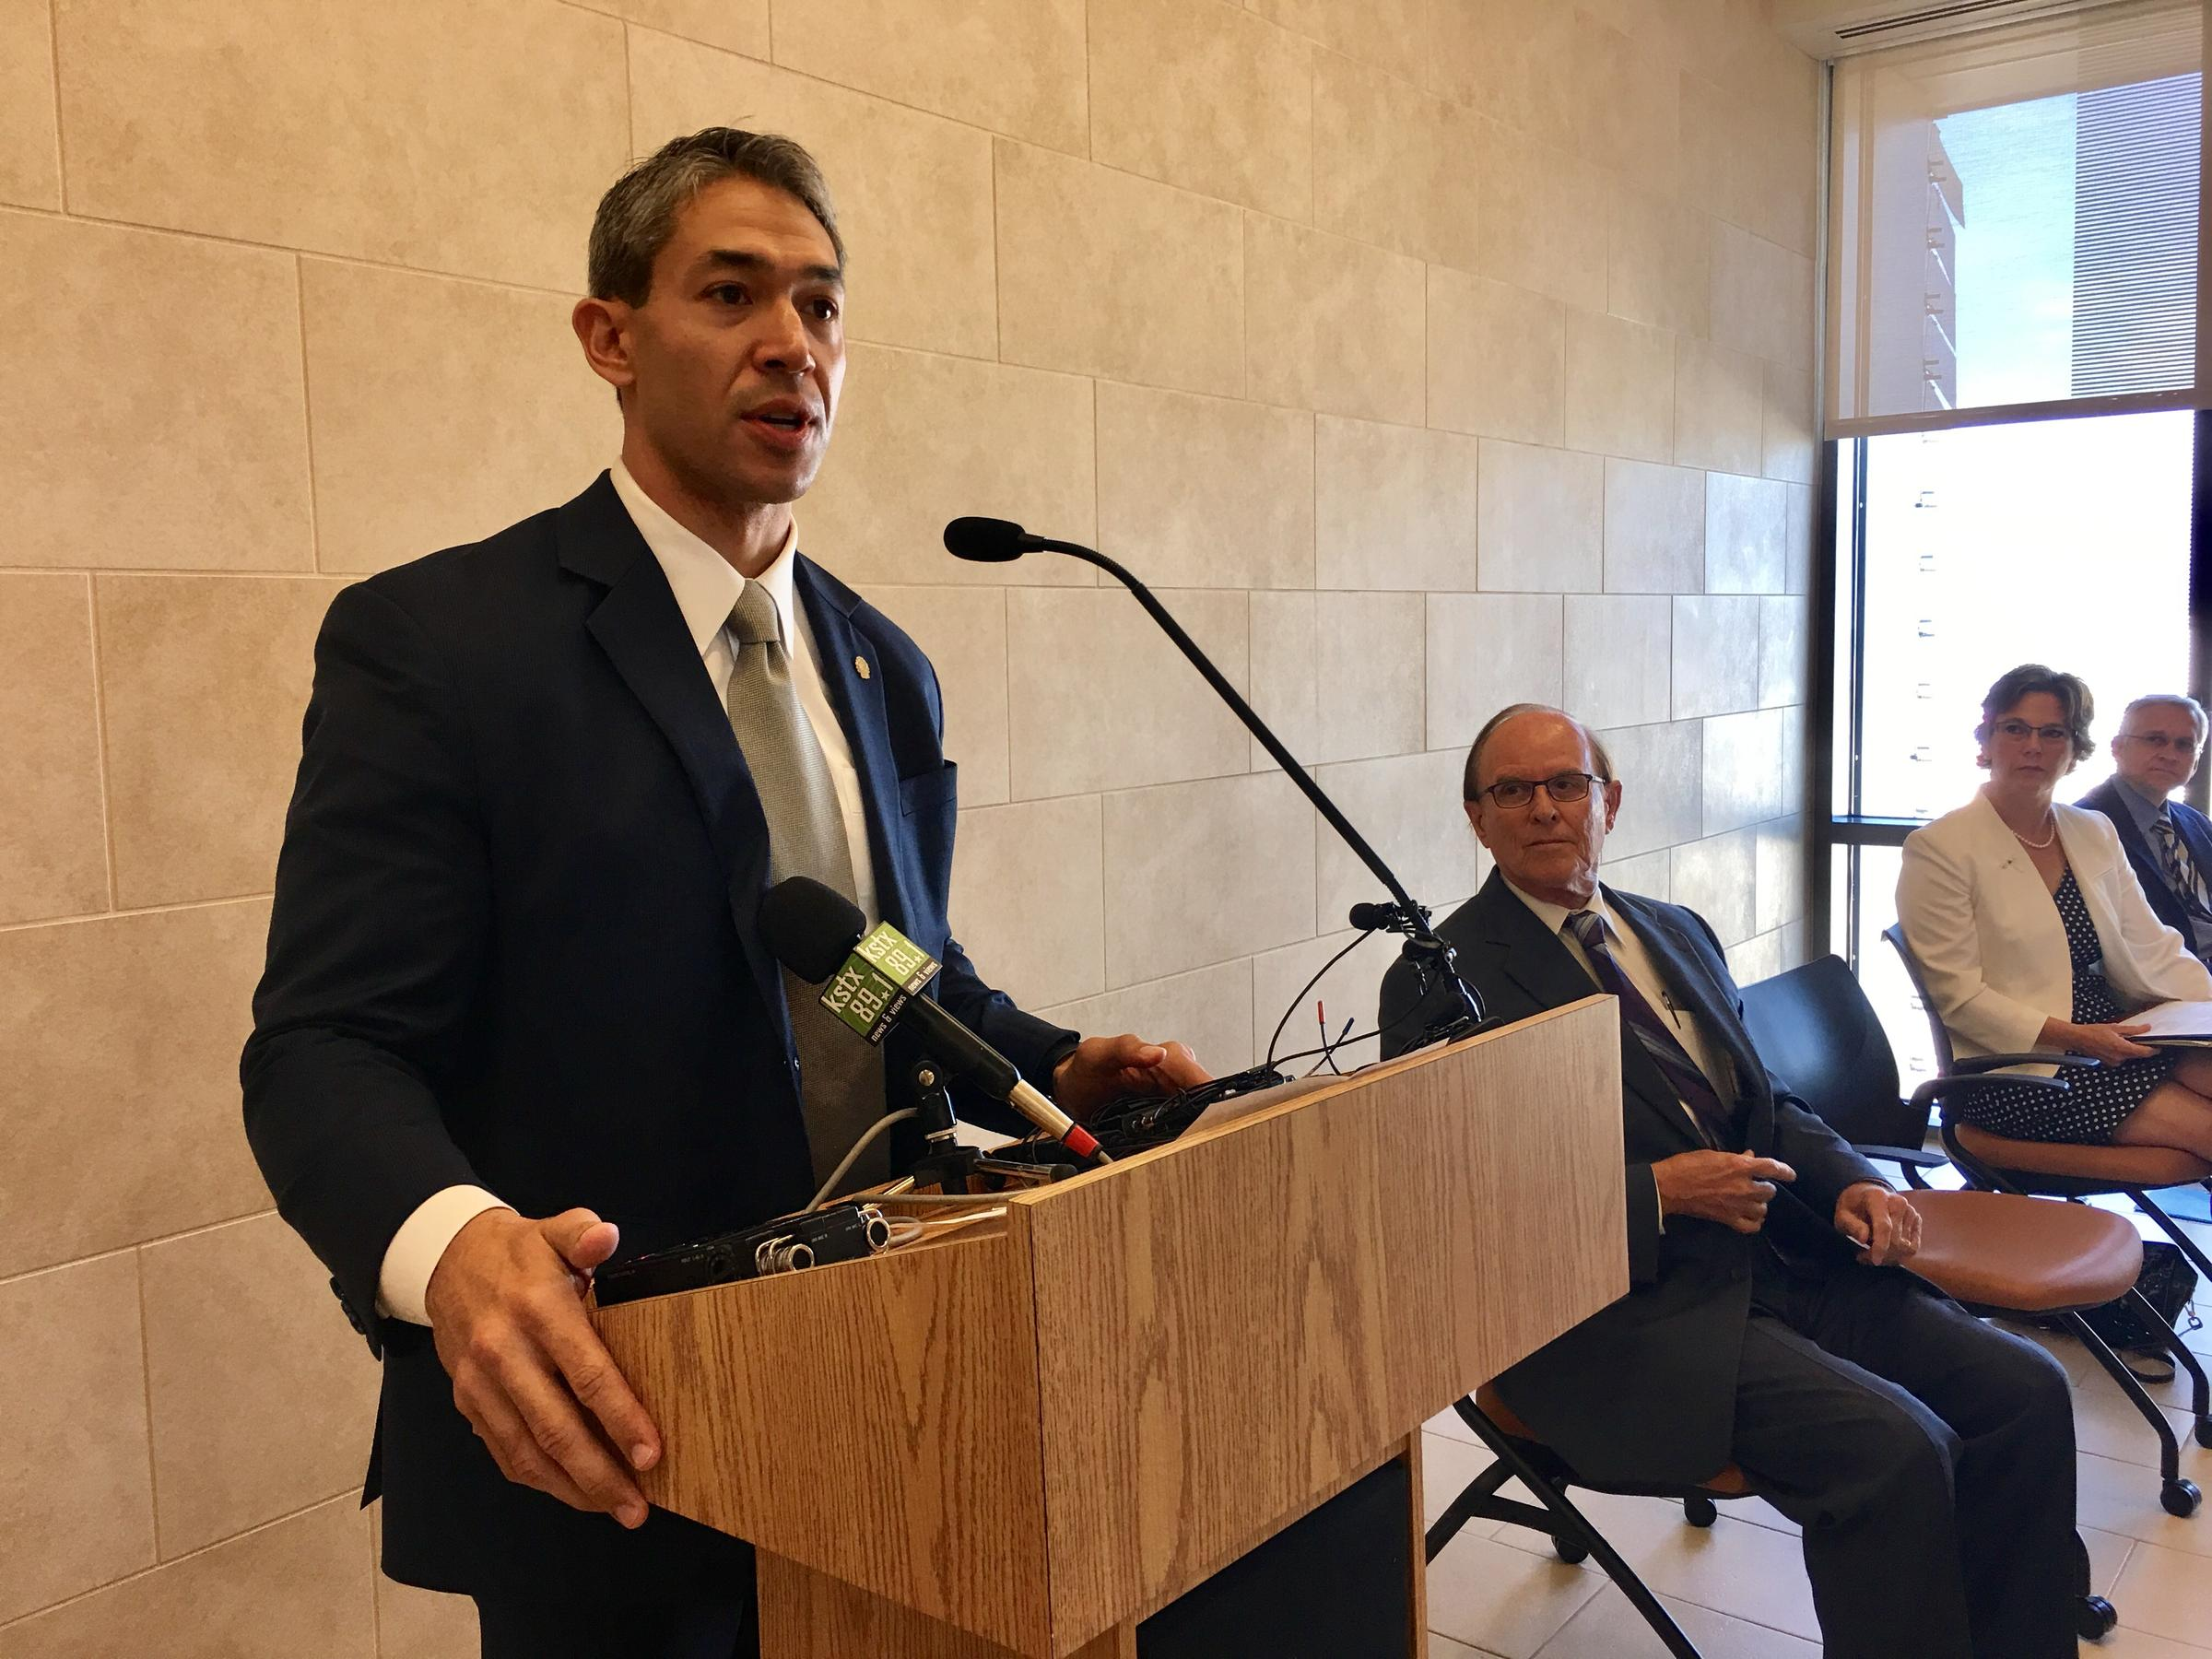 Bexar county physical therapy - San Antonio Mayor Ron Nirenberg Calls The Opioid Epidemic An Insidious Problem